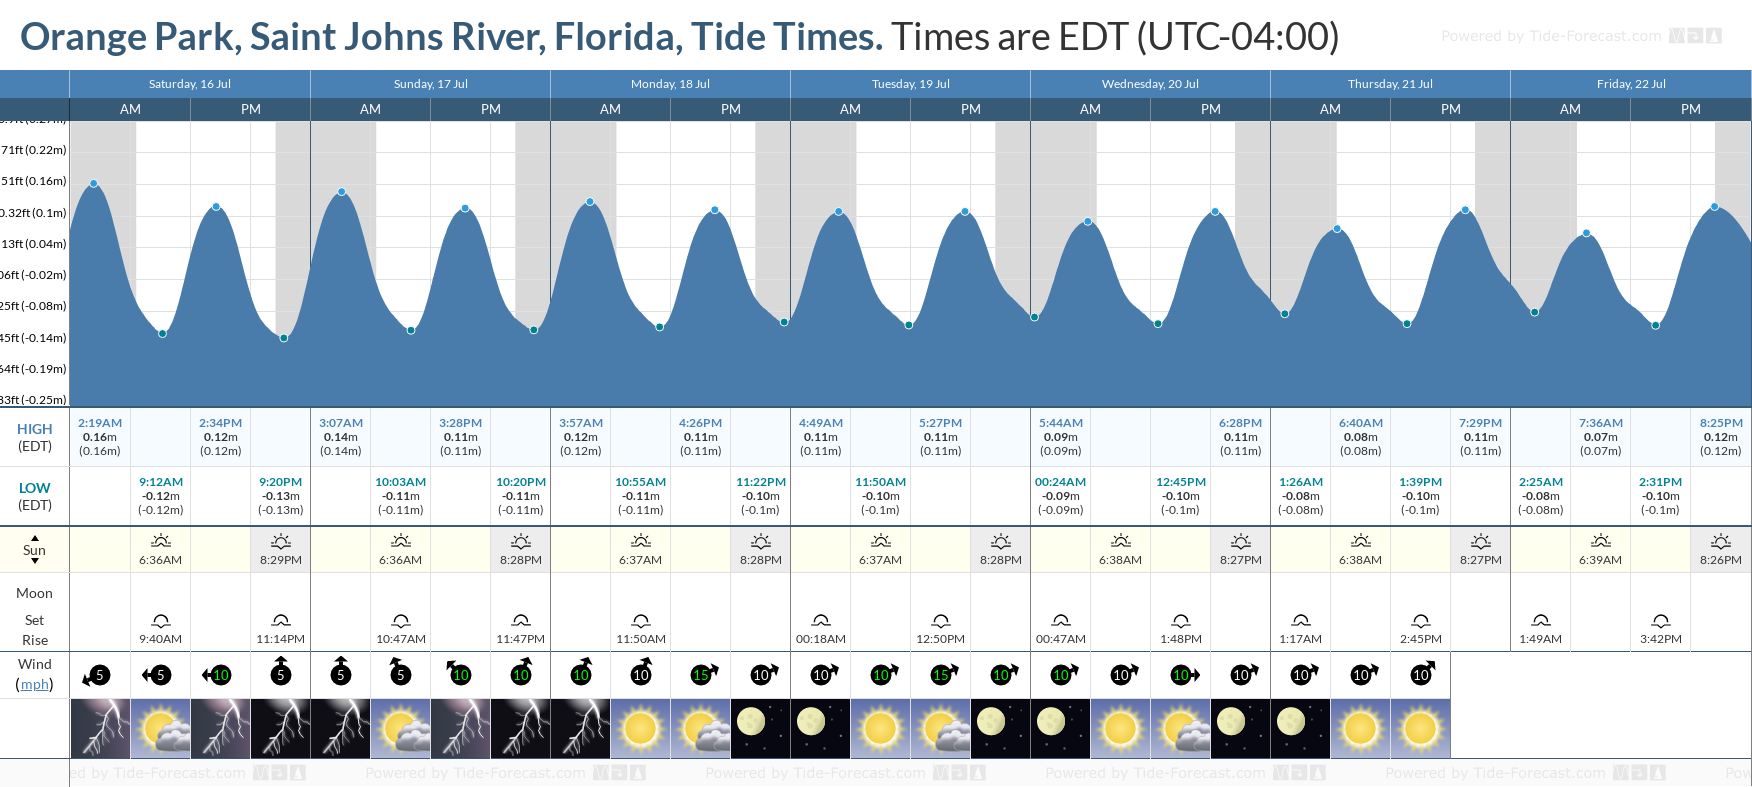 Orange Park, Saint Johns River, Florida Tide Chart including high and low tide tide times for the next 7 days